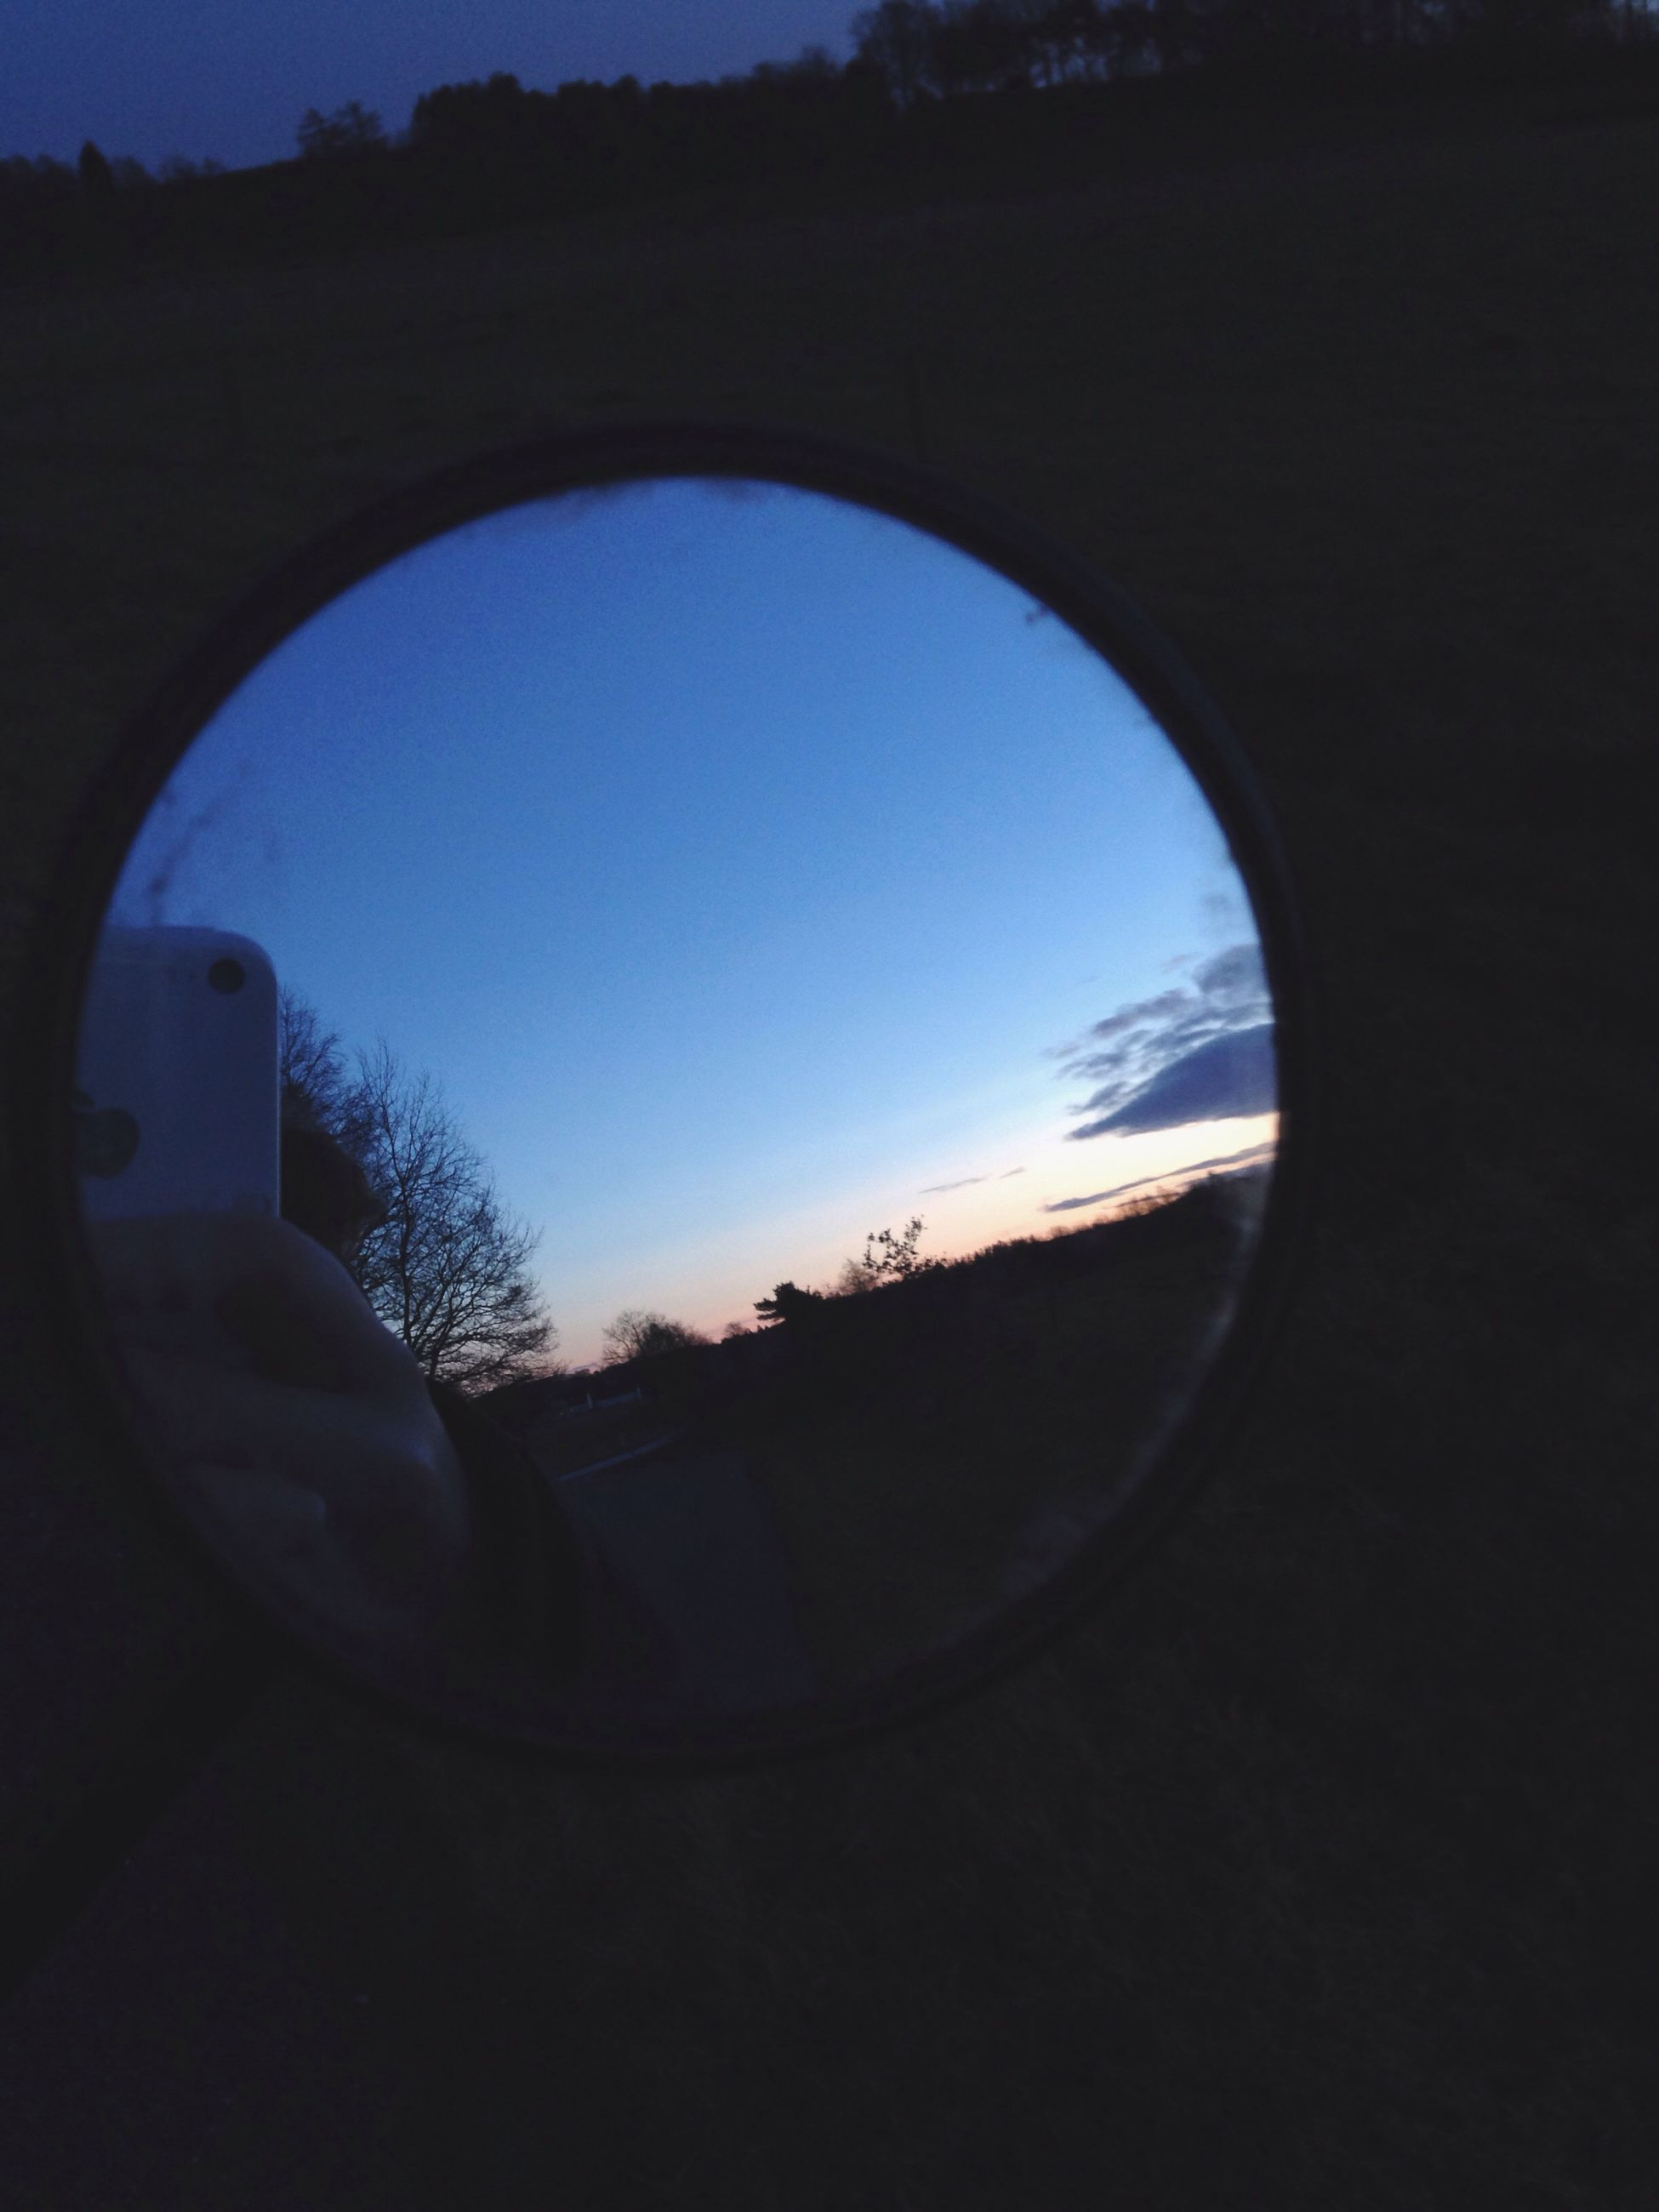 circle, sky, geometric shape, tree, silhouette, reflection, window, indoors, fish-eye lens, cloud - sky, arch, nature, blue, built structure, round, no people, transparent, cloud, landscape, tranquility